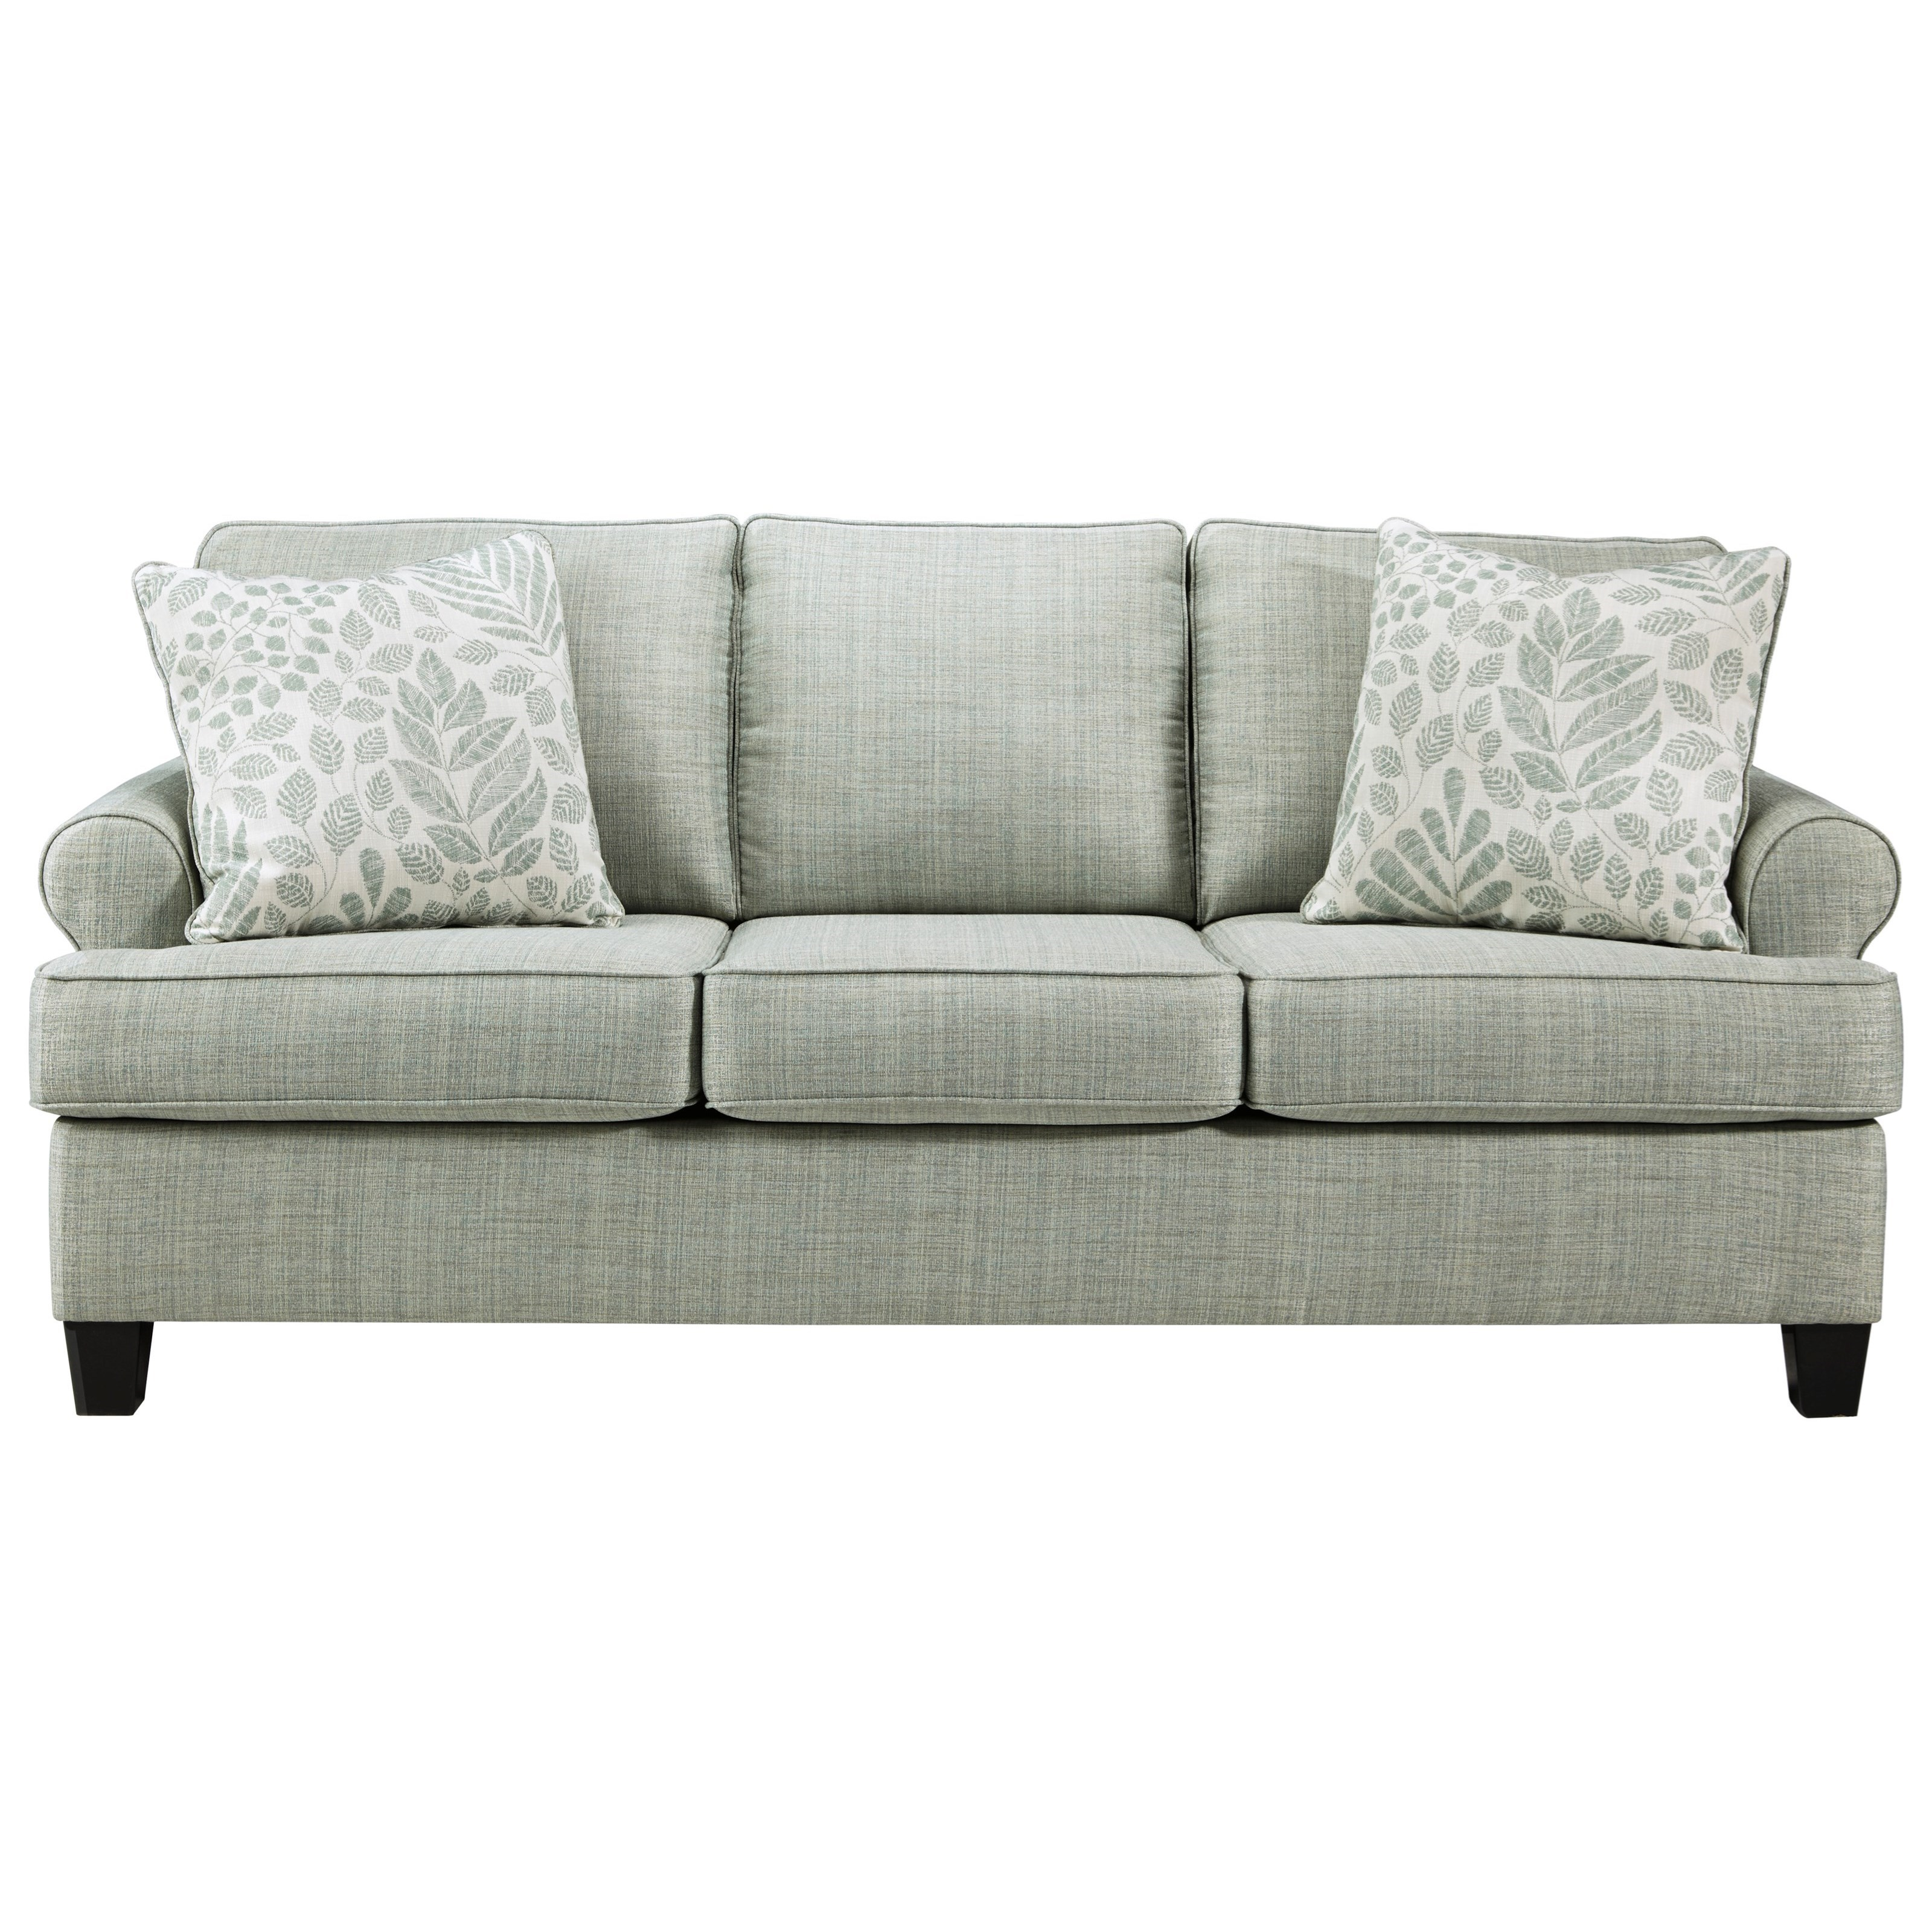 Kilarney Sofa by Signature Design by Ashley at HomeWorld Furniture